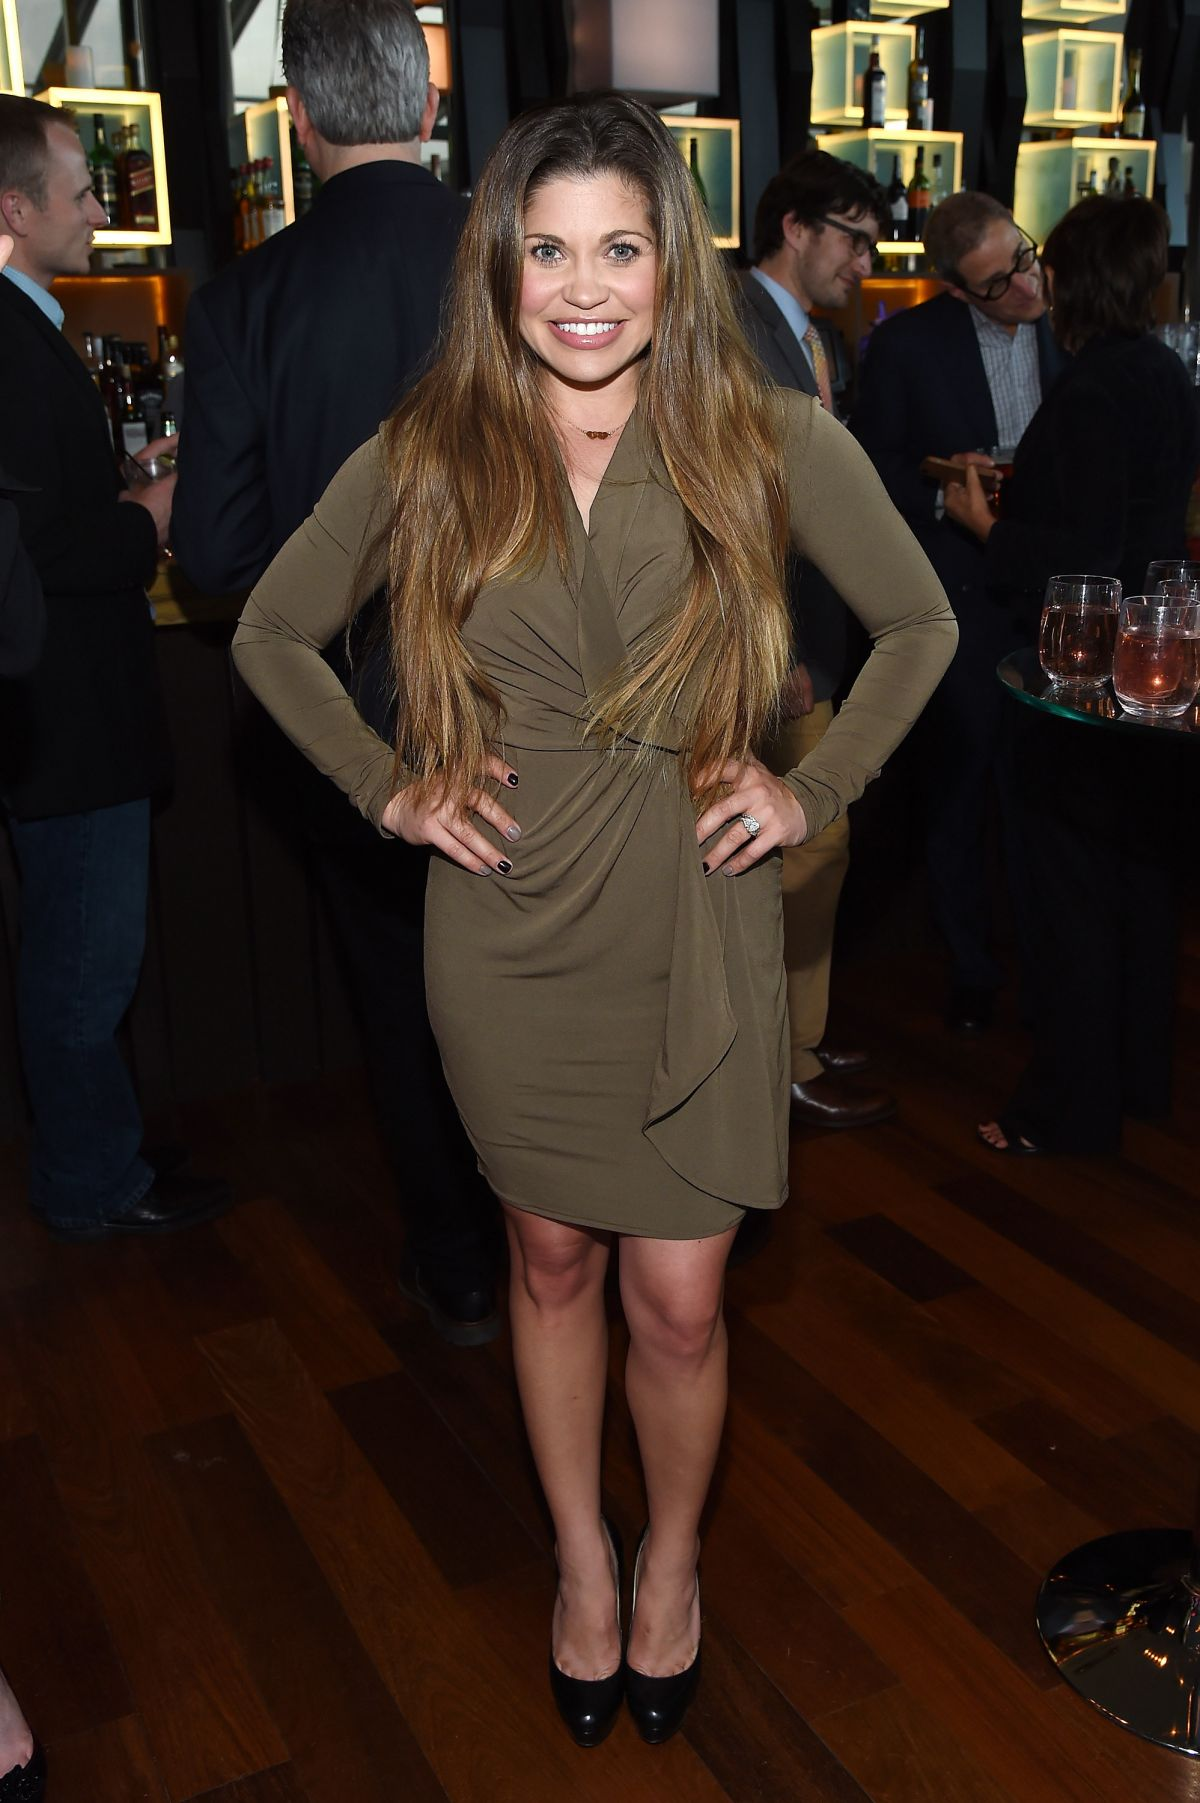 DANIELLE FISHEL at Time Inc.